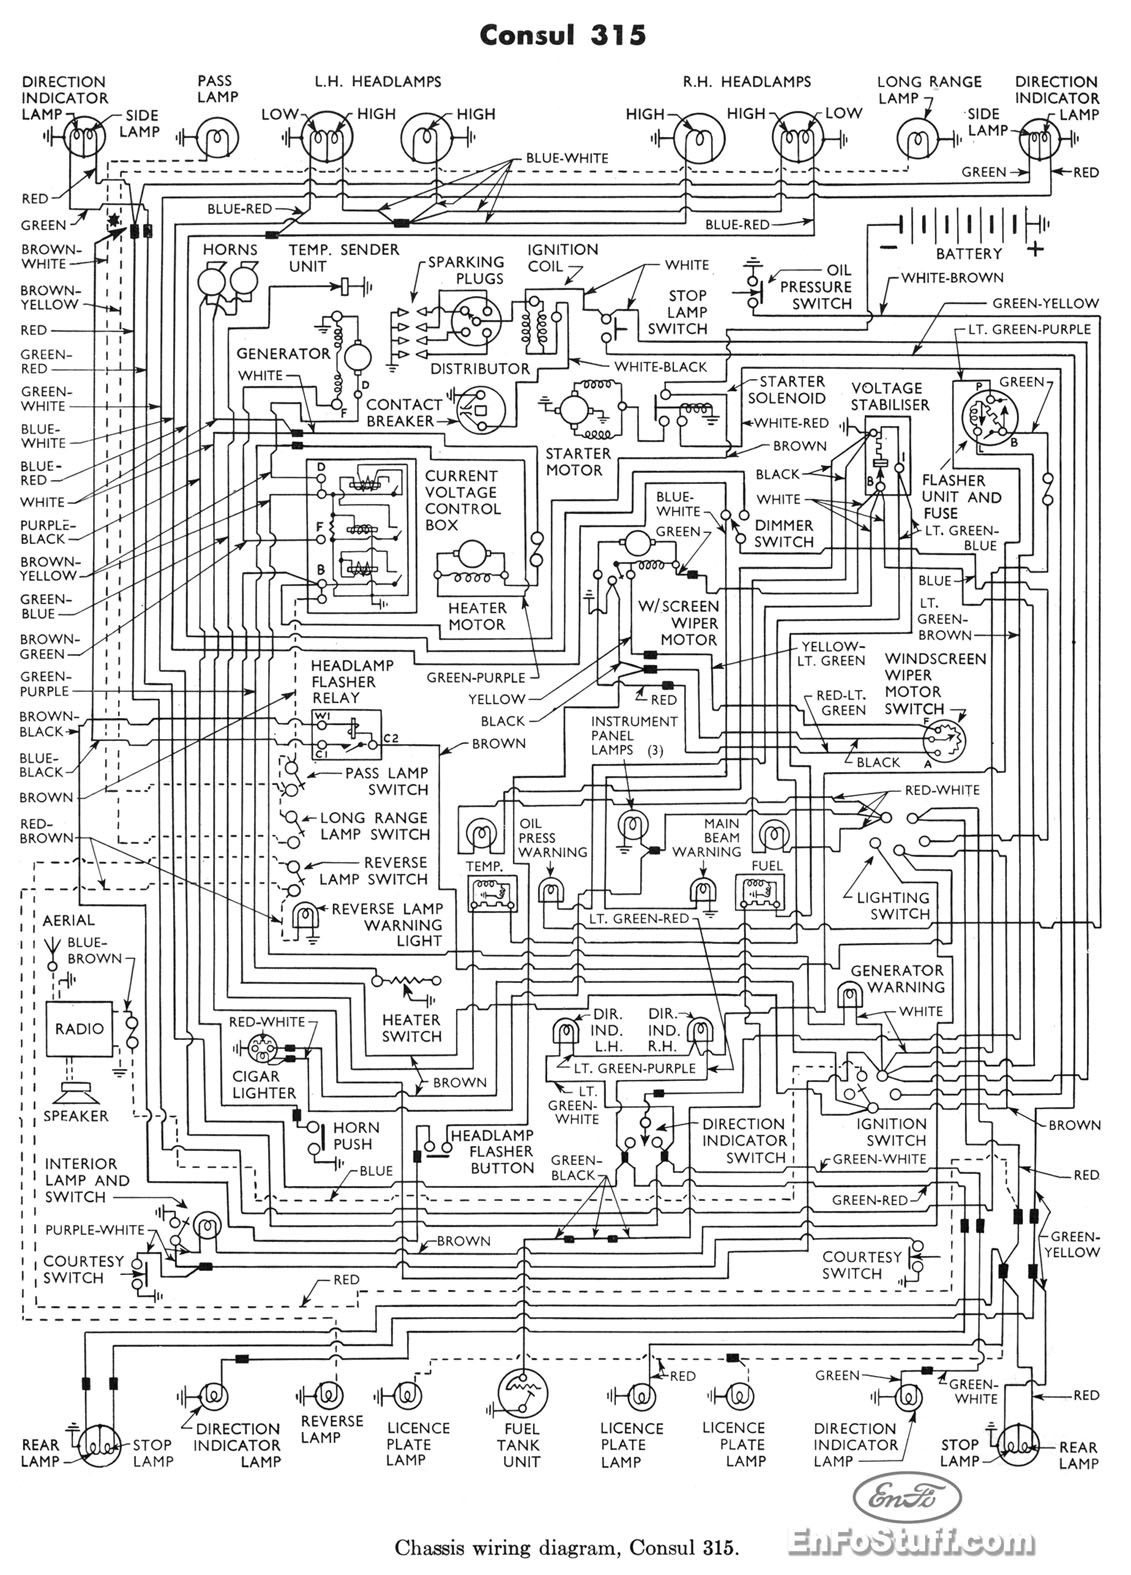 ford wiring diagram wiring diagram for a ford tractor 3930 the wiring diagram ford tractor wiring harness diagram vidim